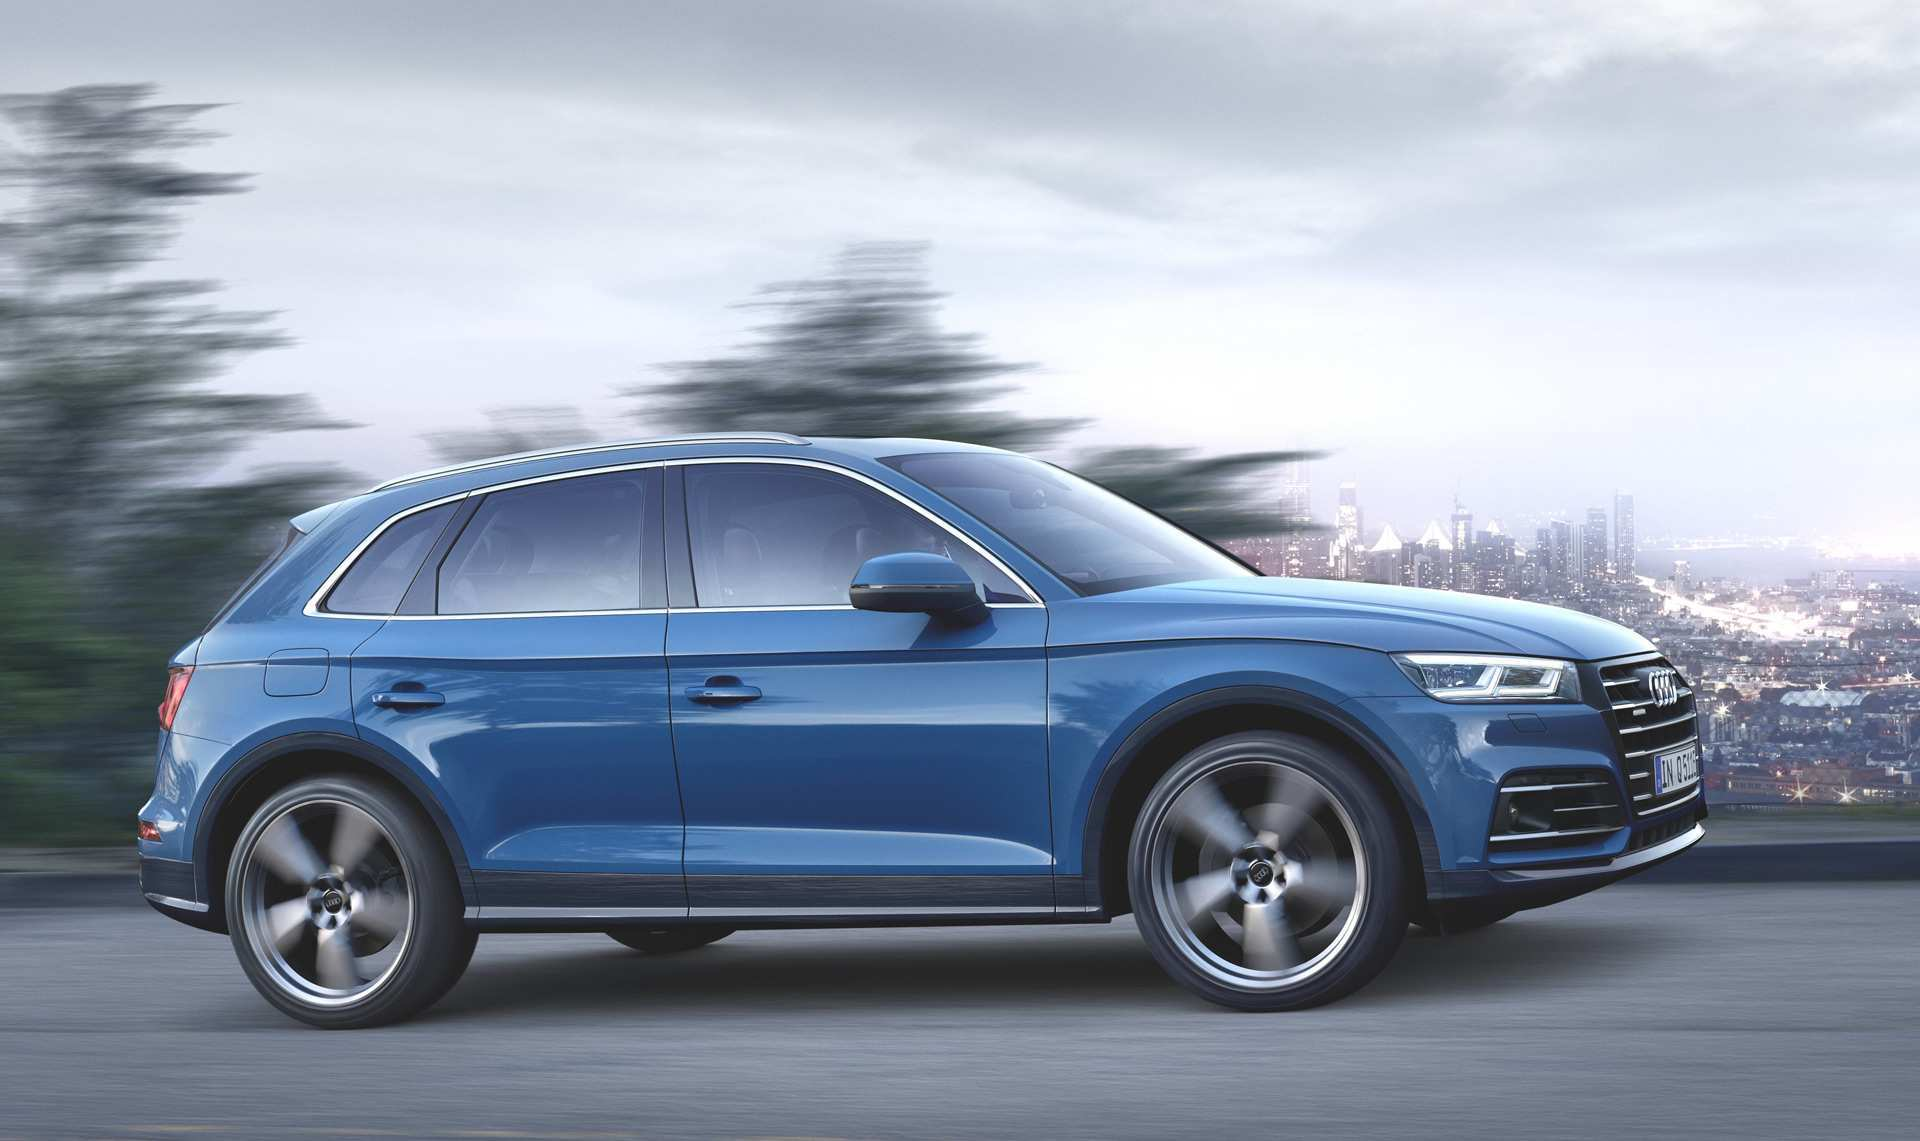 26 Best When Does The 2020 Audi Q5 Come Out Release Date and Concept